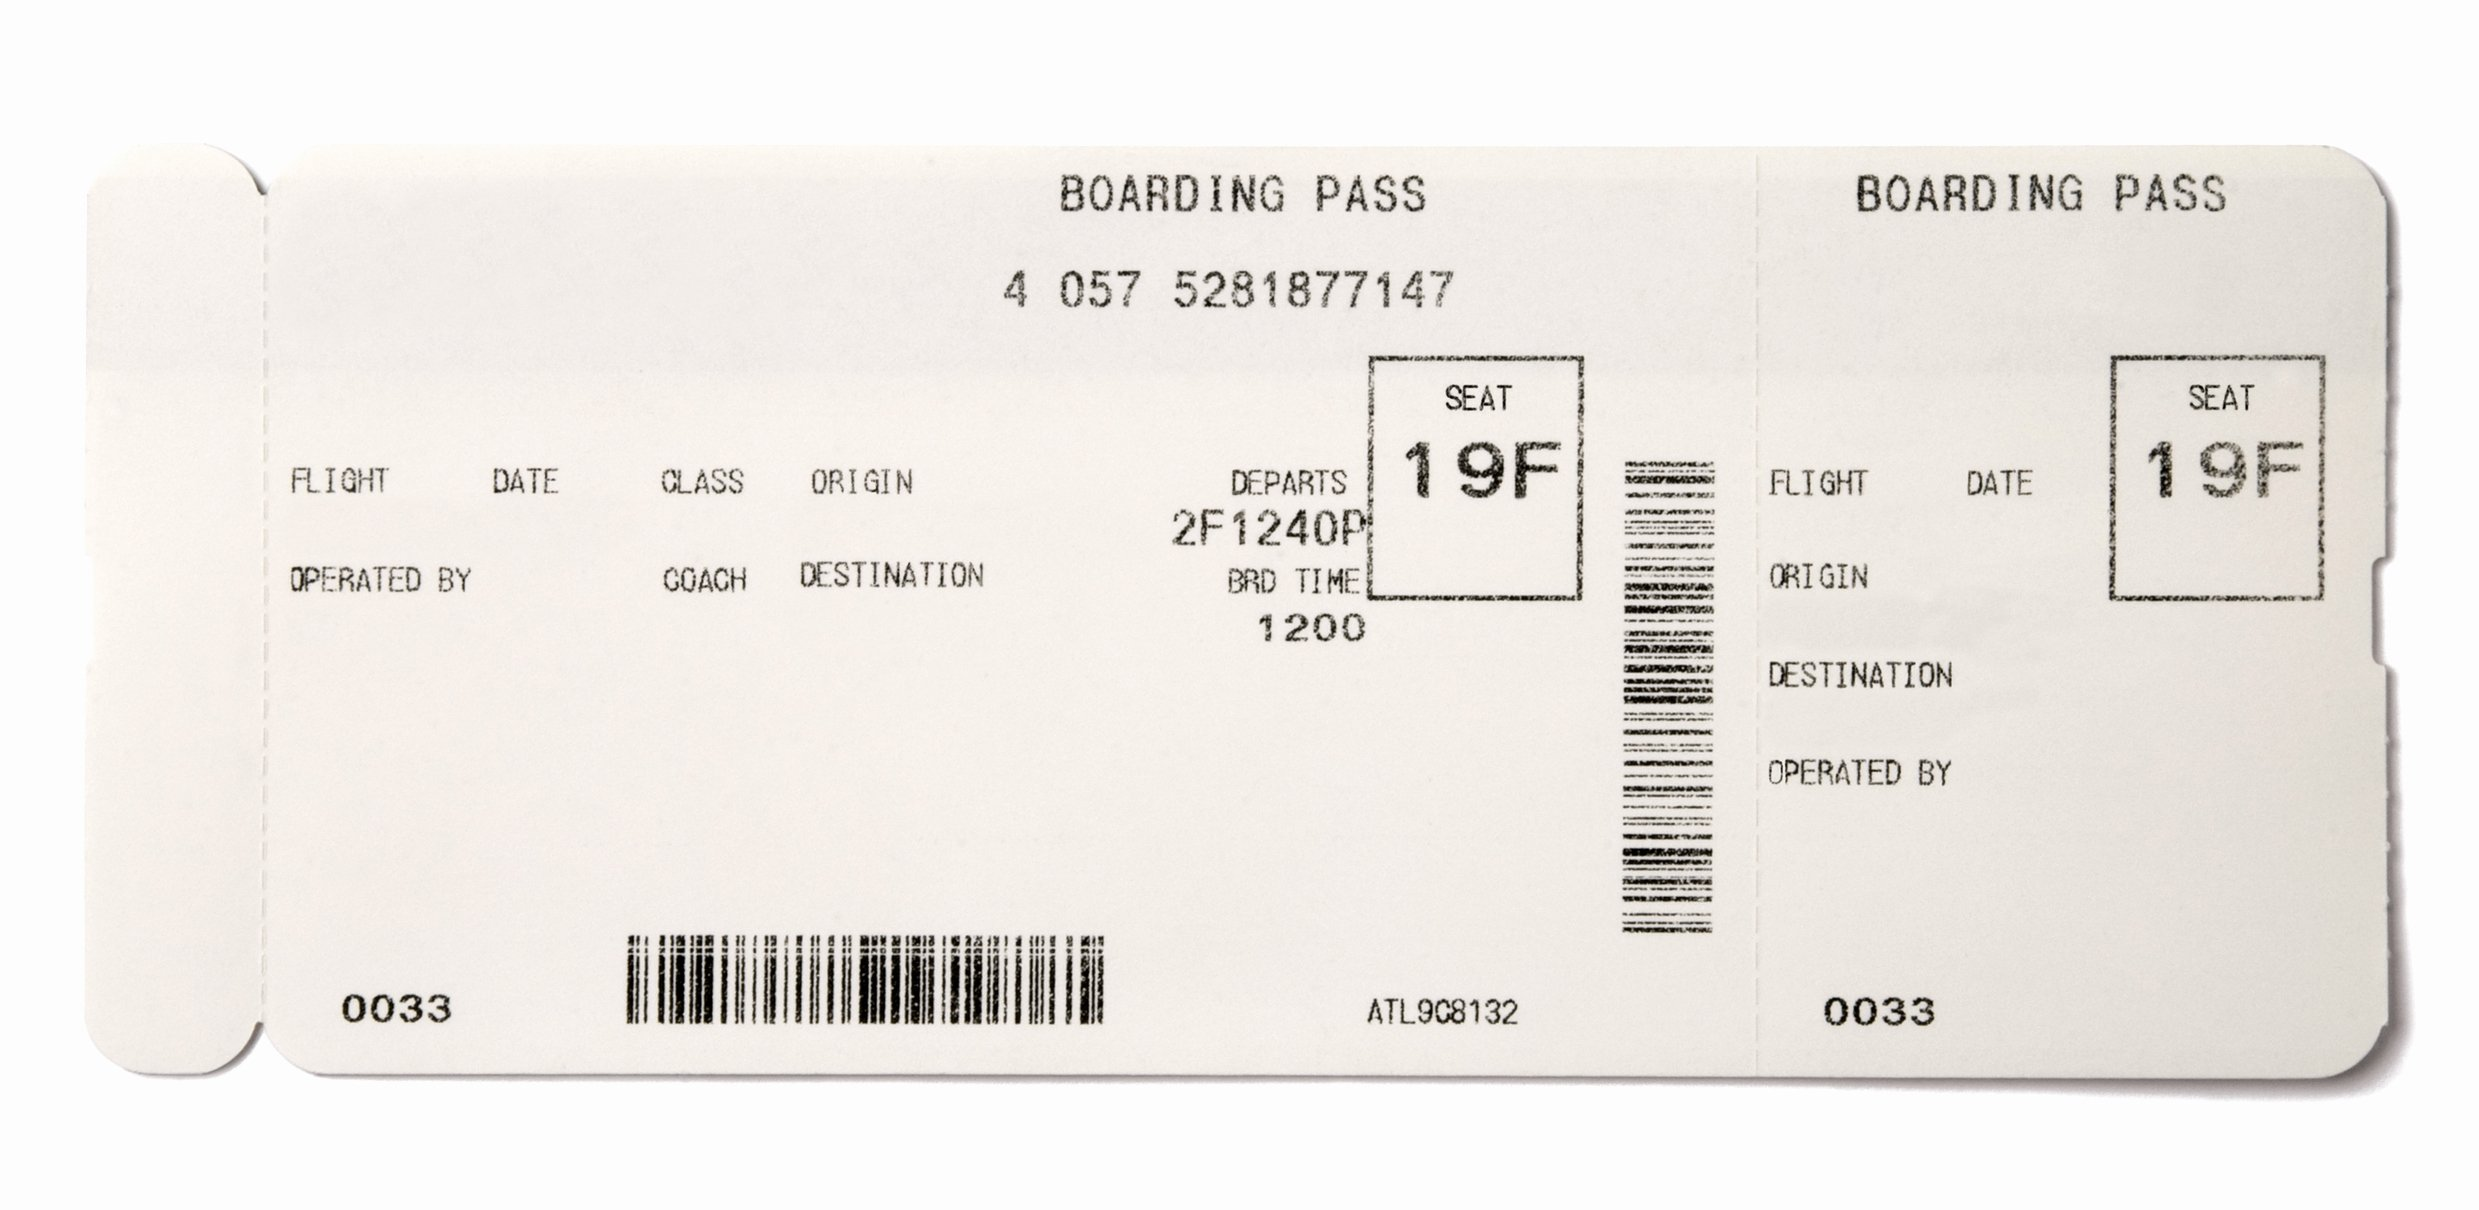 Fake Airline Ticket Generator Lovely Making Fake Boarding Passes as Gifts Le Chic Geek